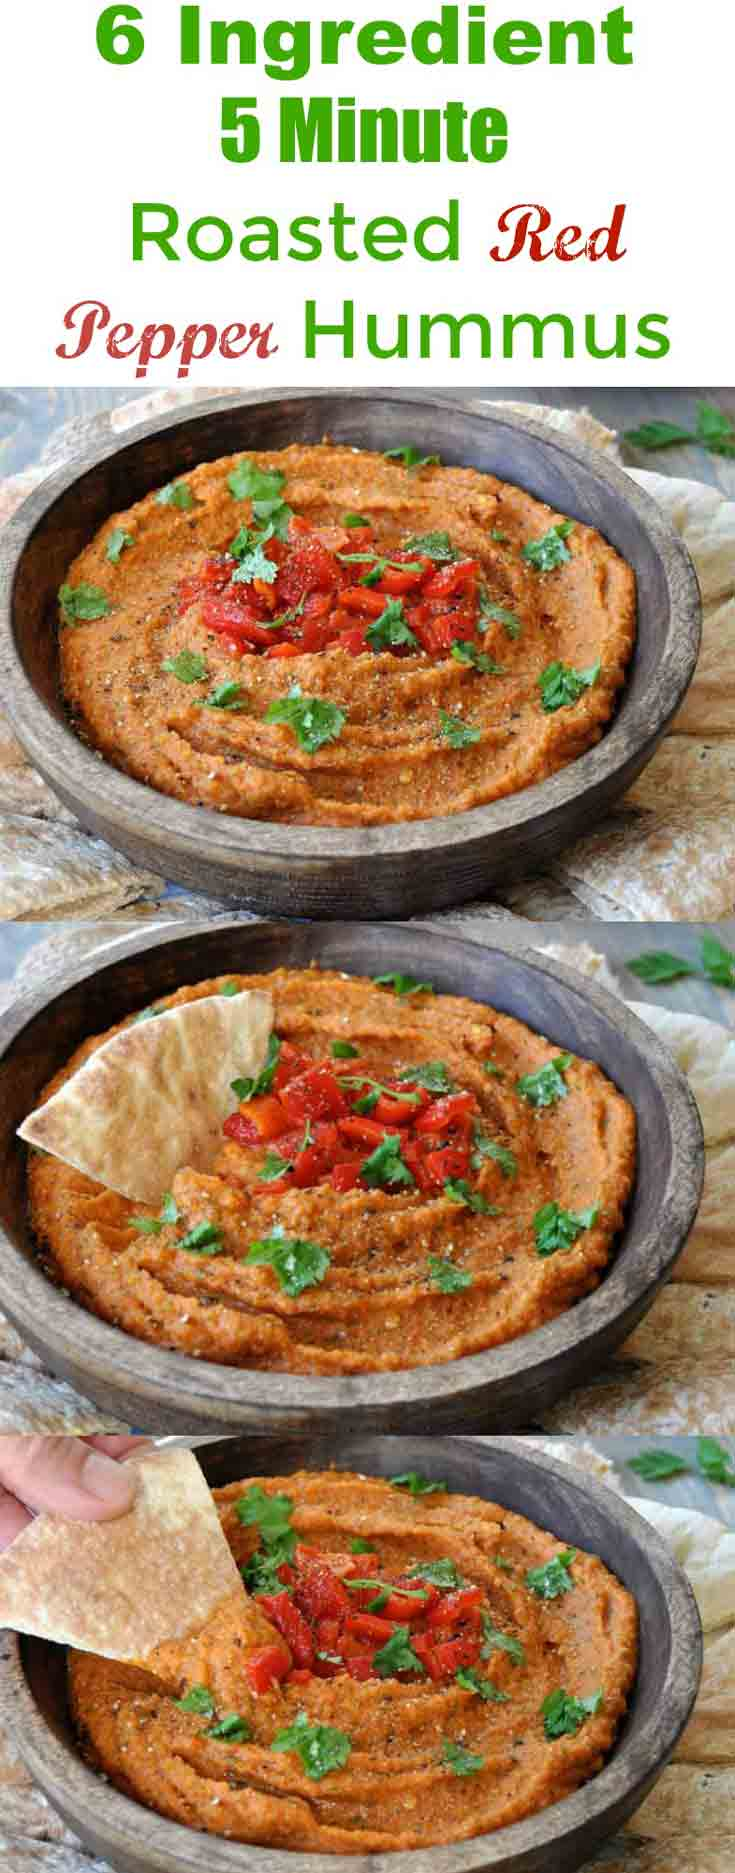 This roasted red pepper hummus recipe is so easy to make. Perfect for ...